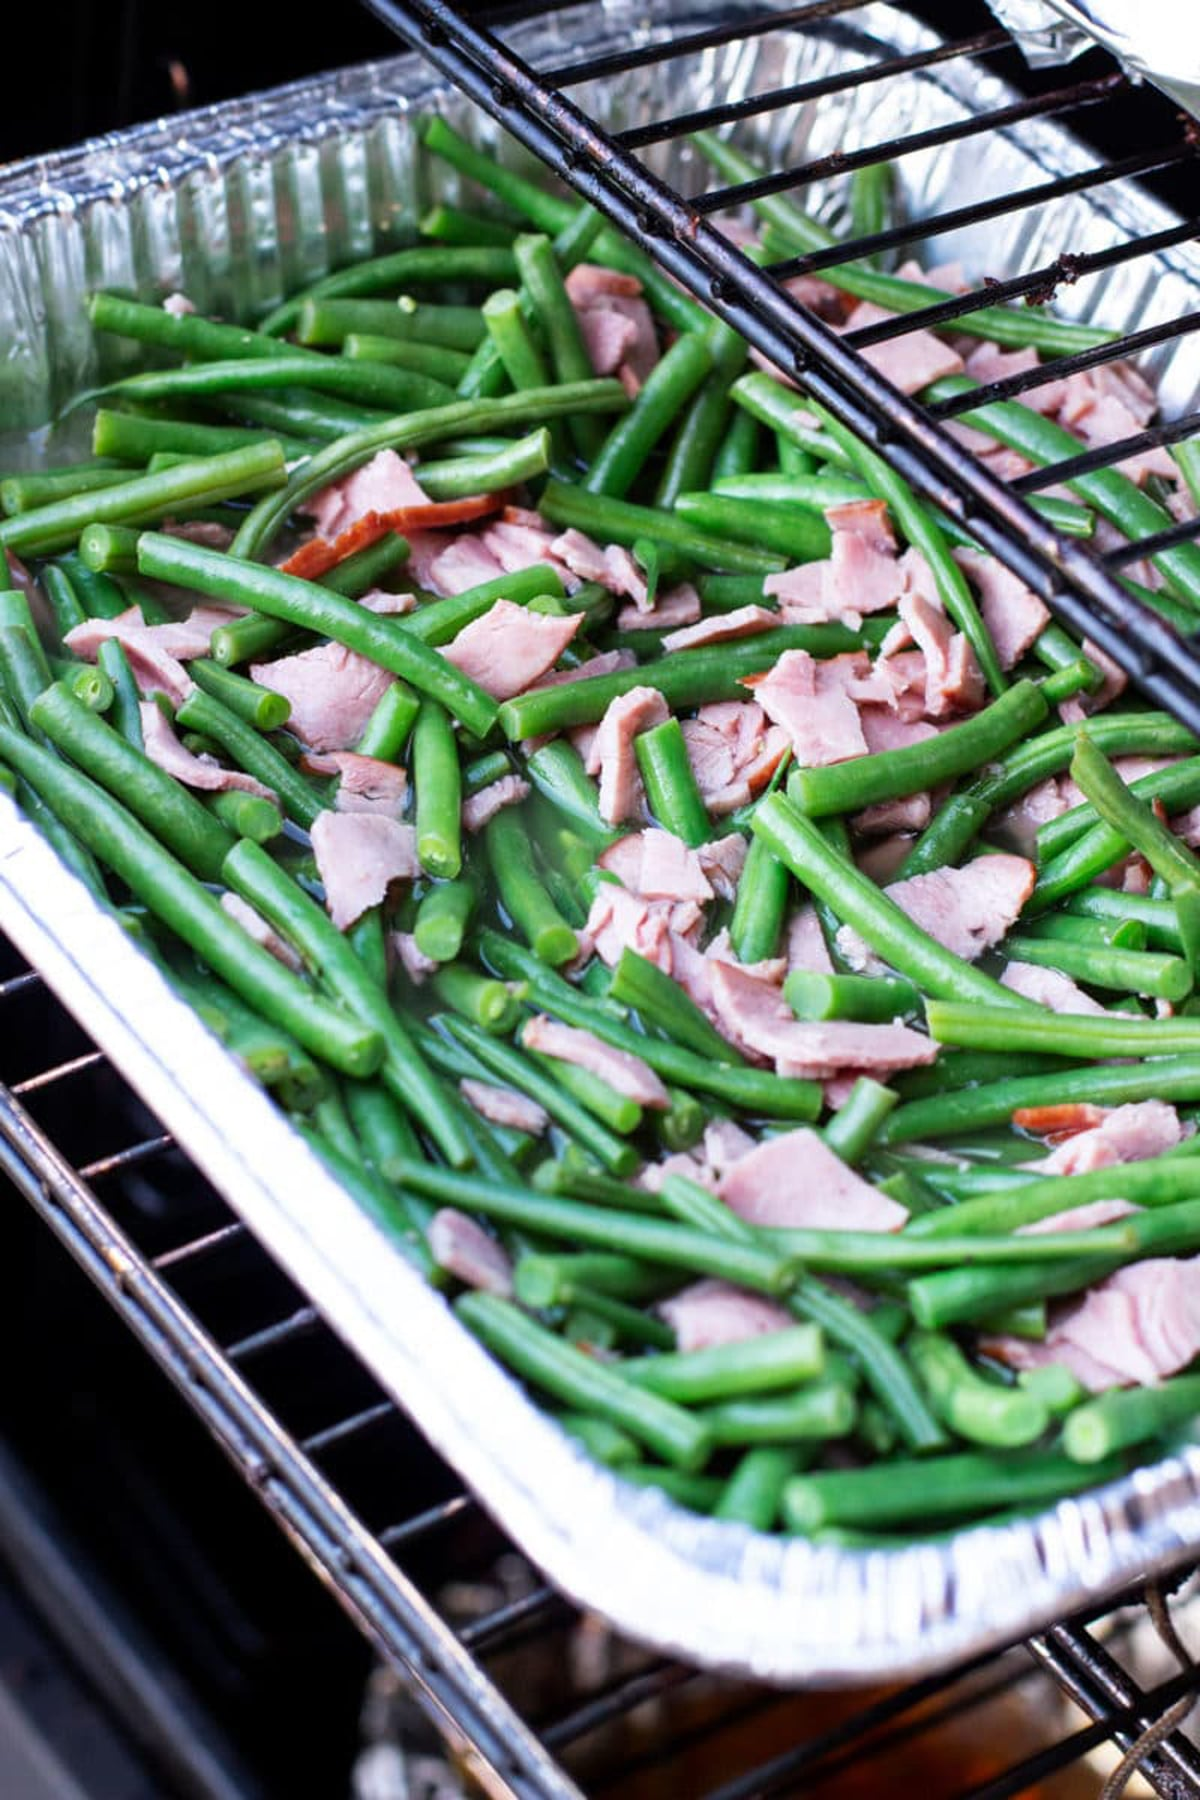 Pan of green beans and bacon being placed in smoker.